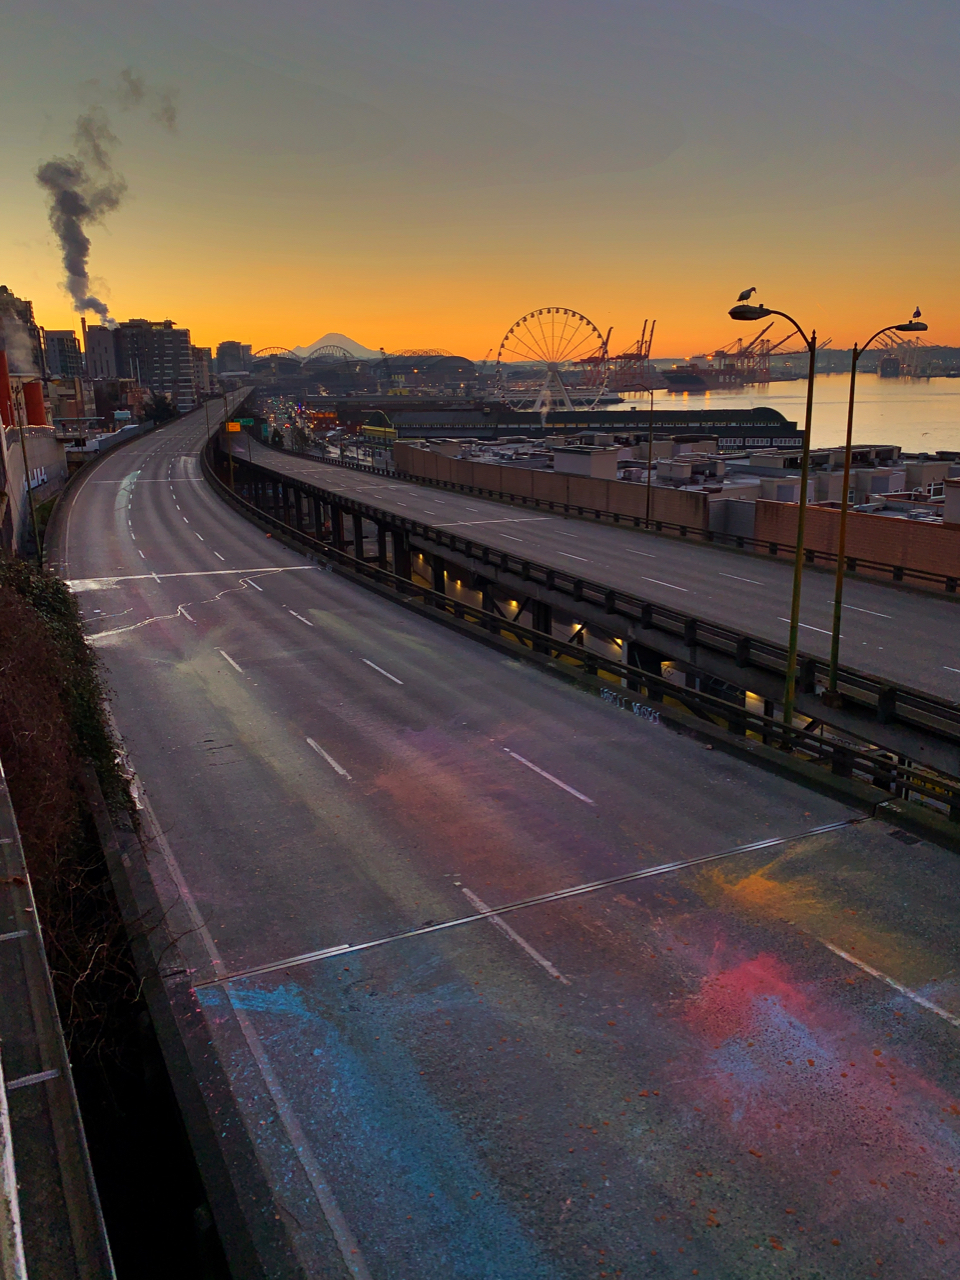 Viaduct sunrise